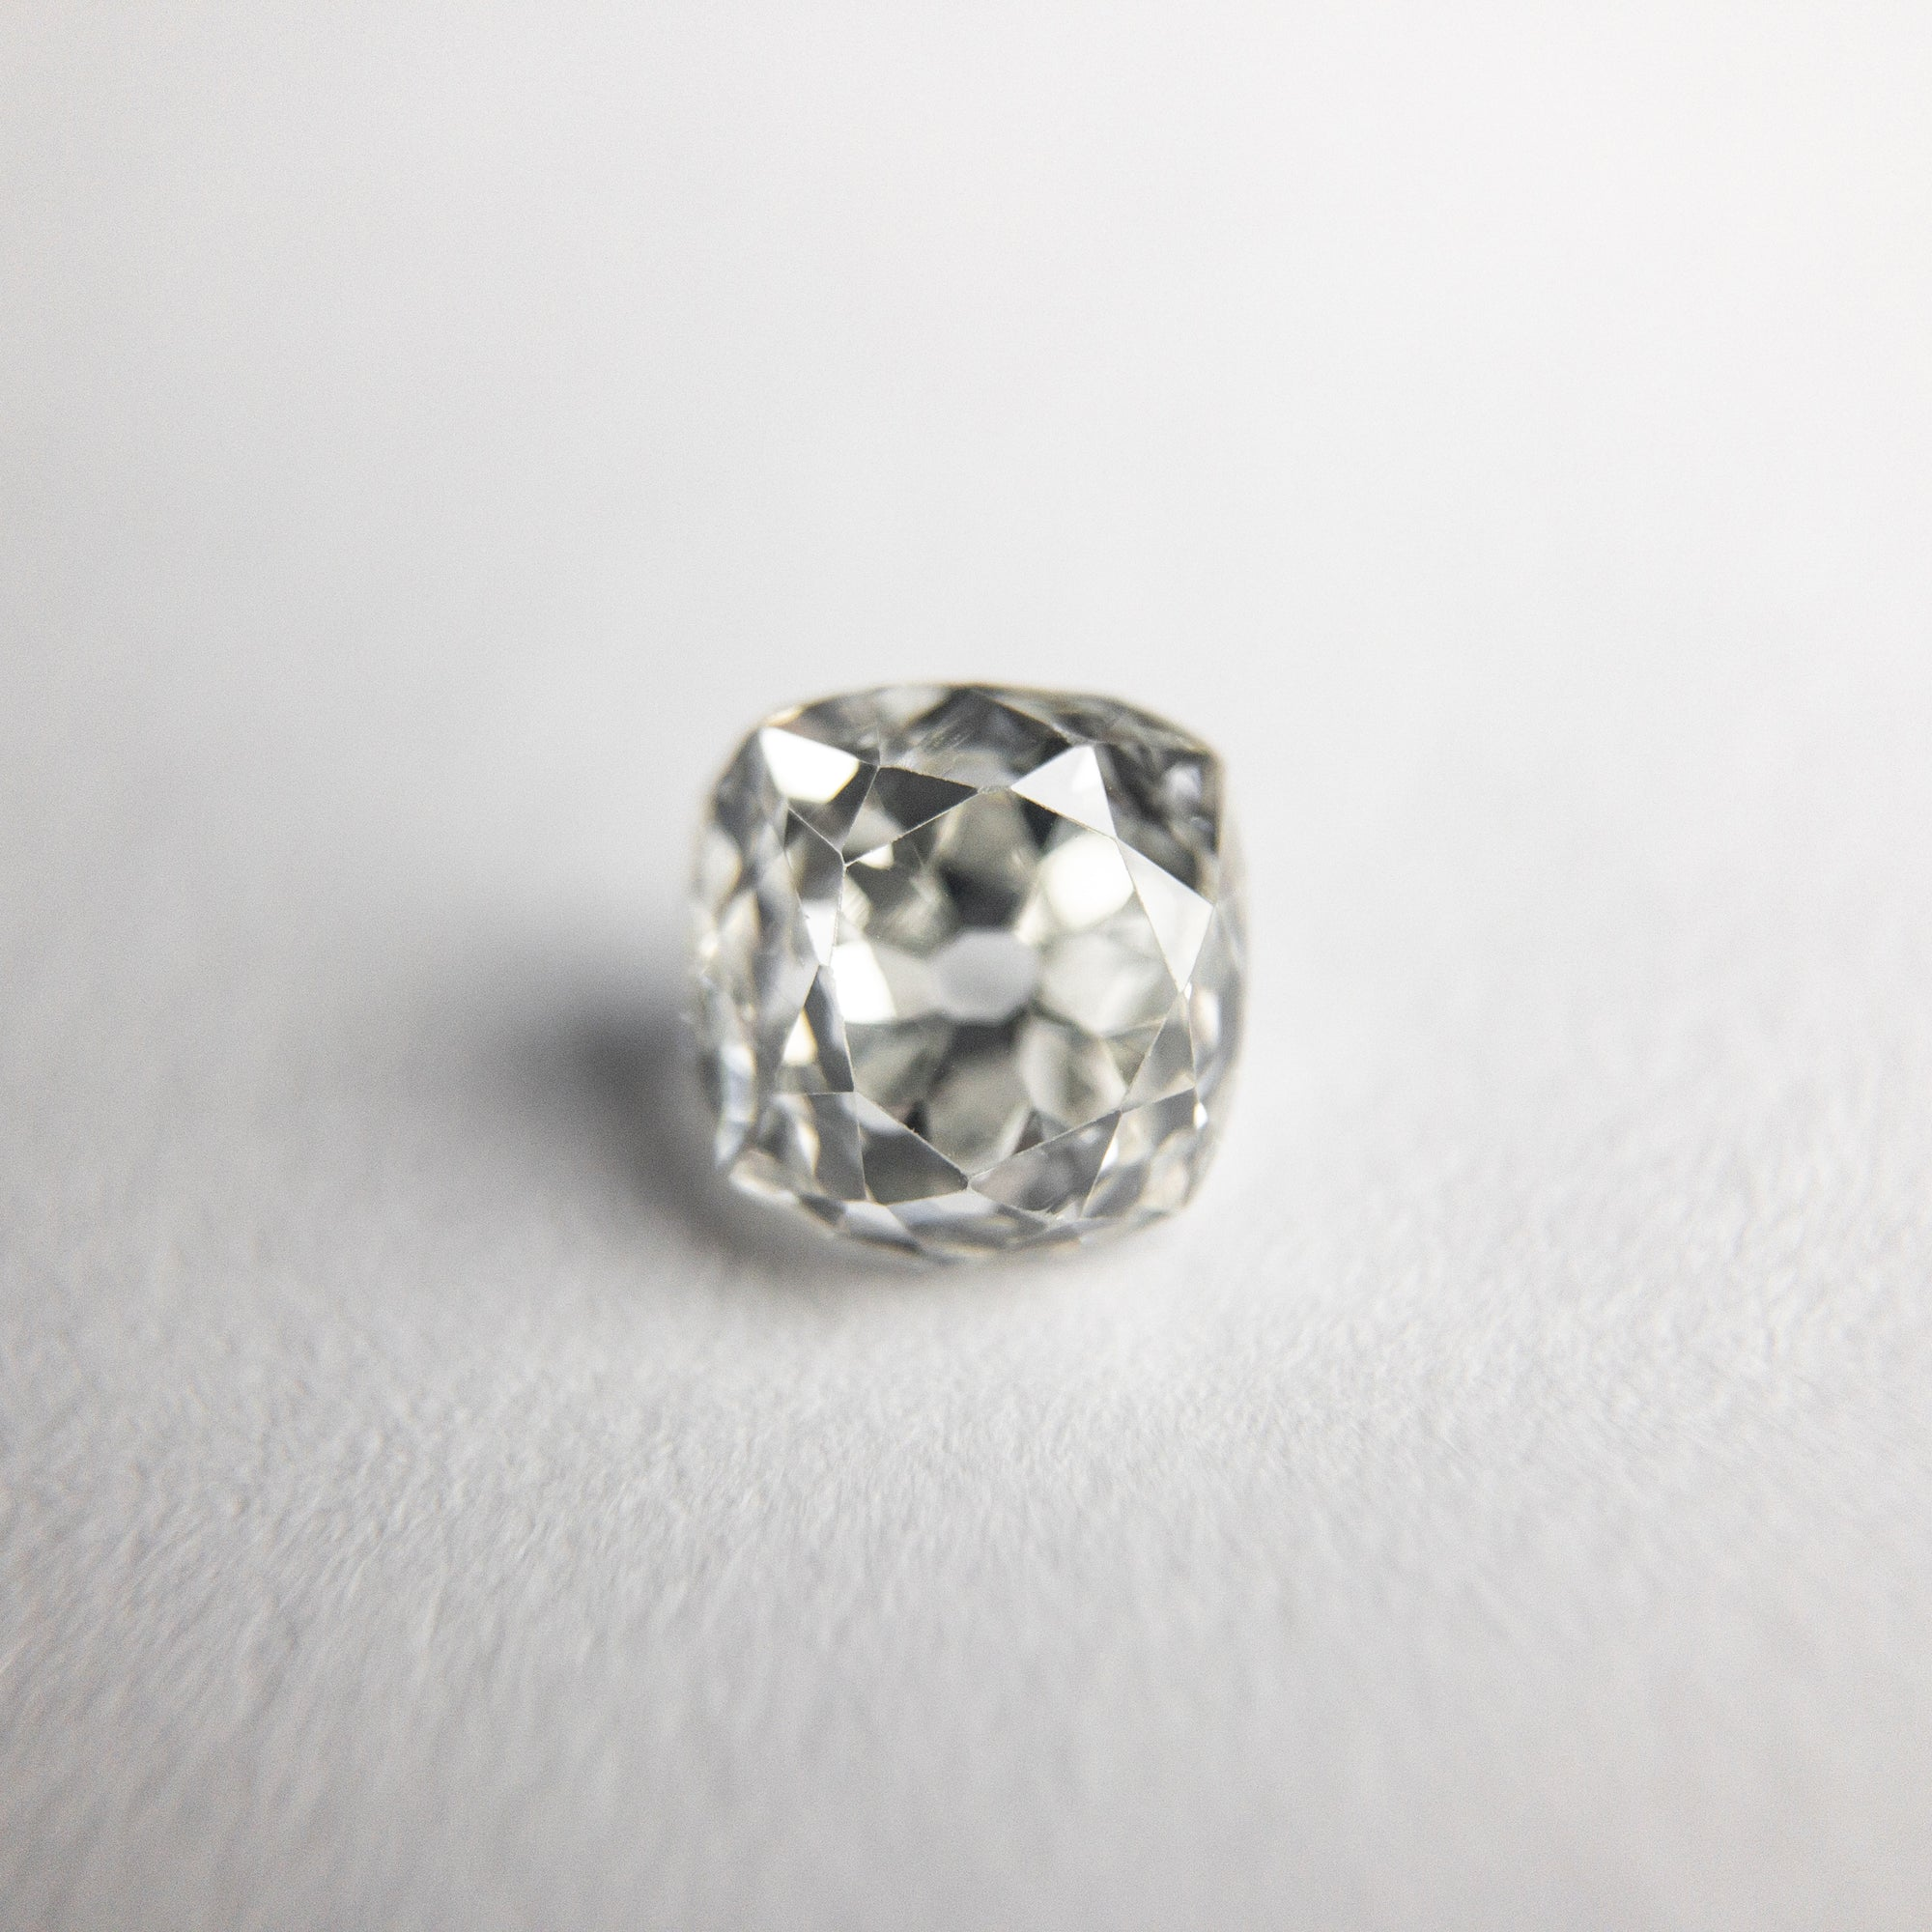 0.70ct 5.03x4.94x3.40mm Antique Old Mine Cut 18337-01